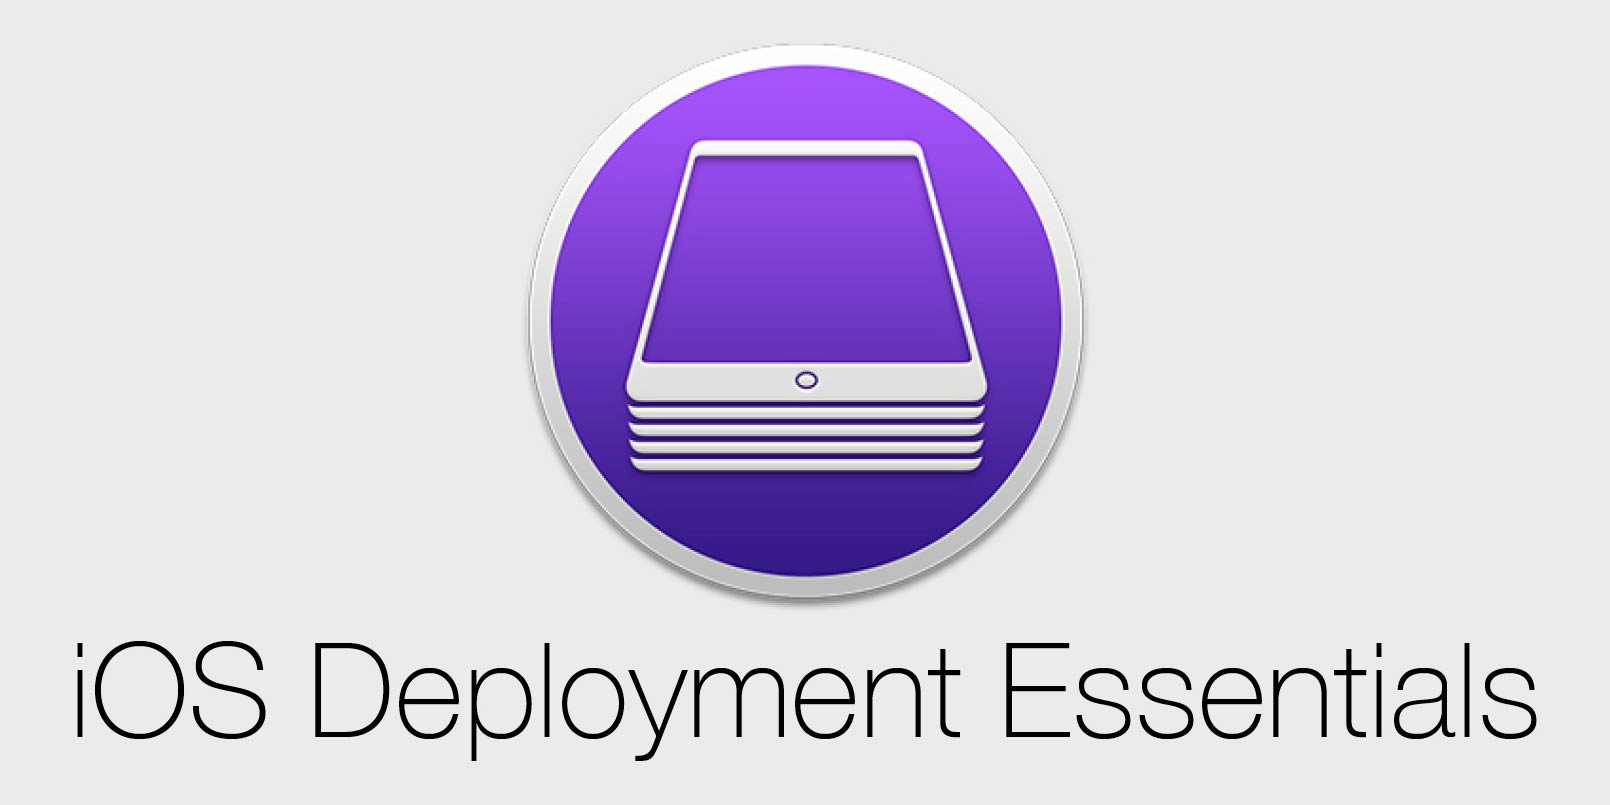 Kurs iOS Deployment Essentials